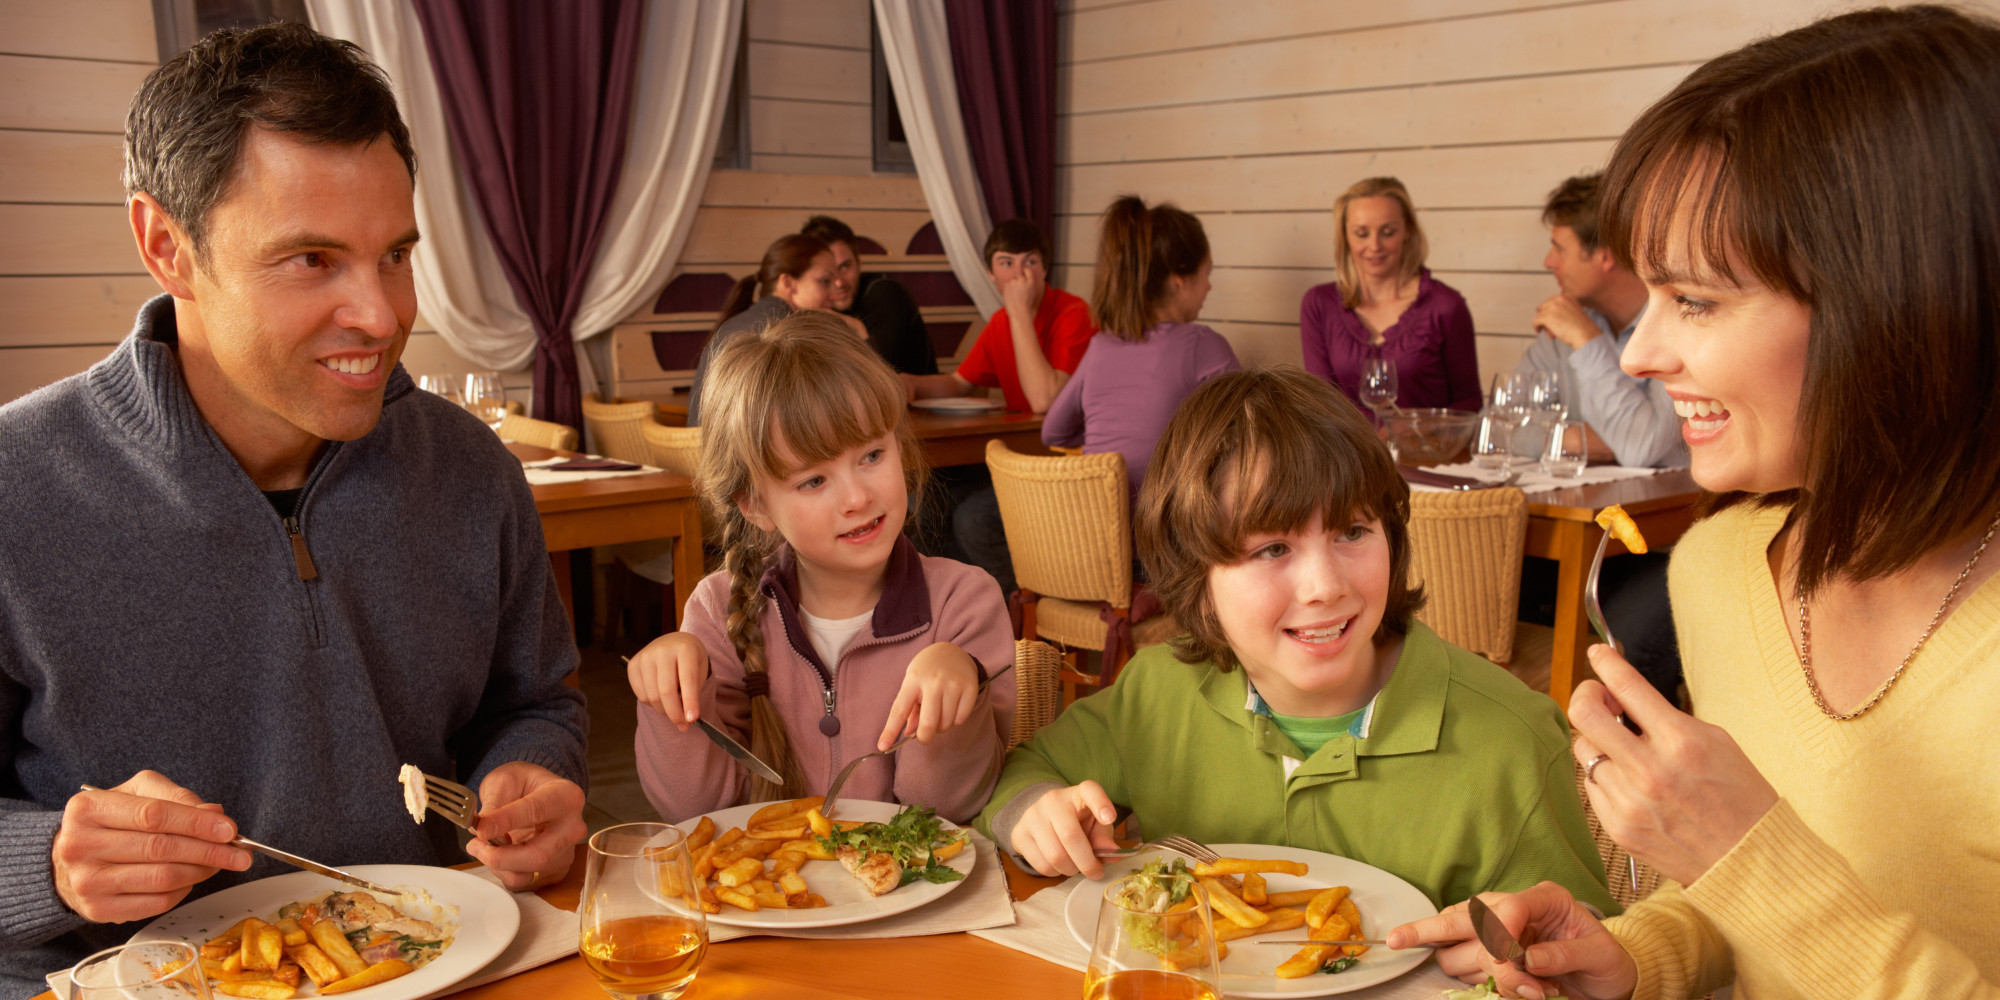 How to successfully occupy children in restaurants without for Family diner